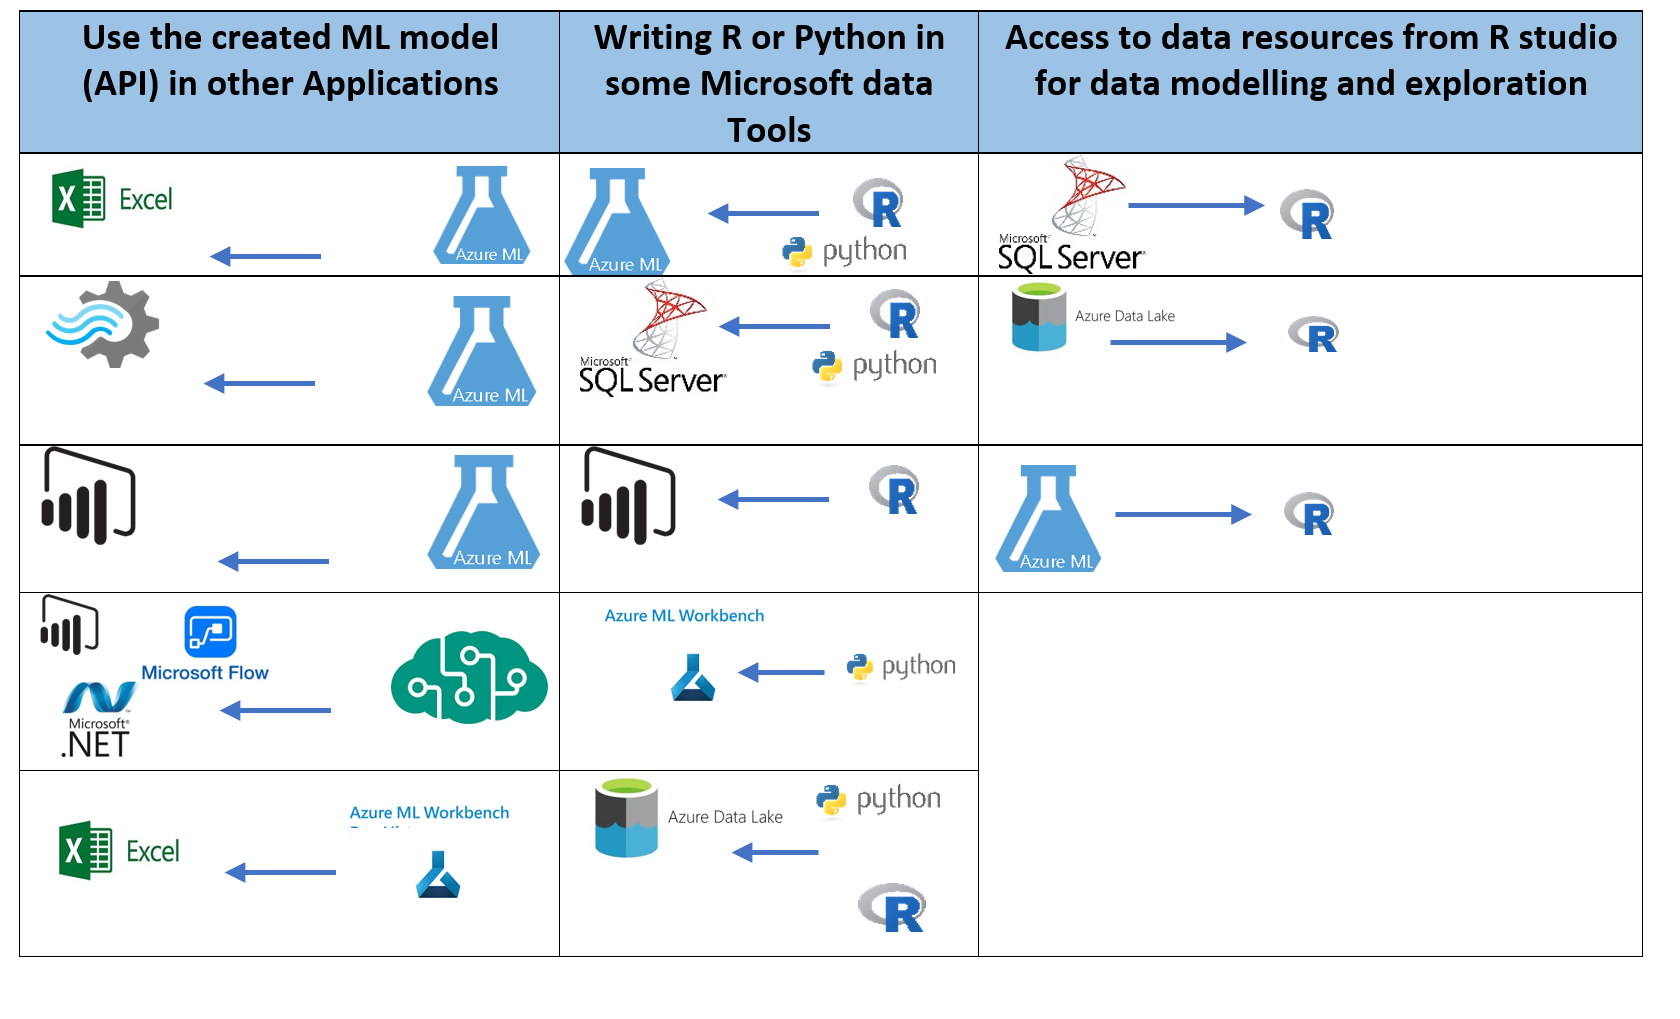 Road Map To Use Microsoft Ml Tools Radacad